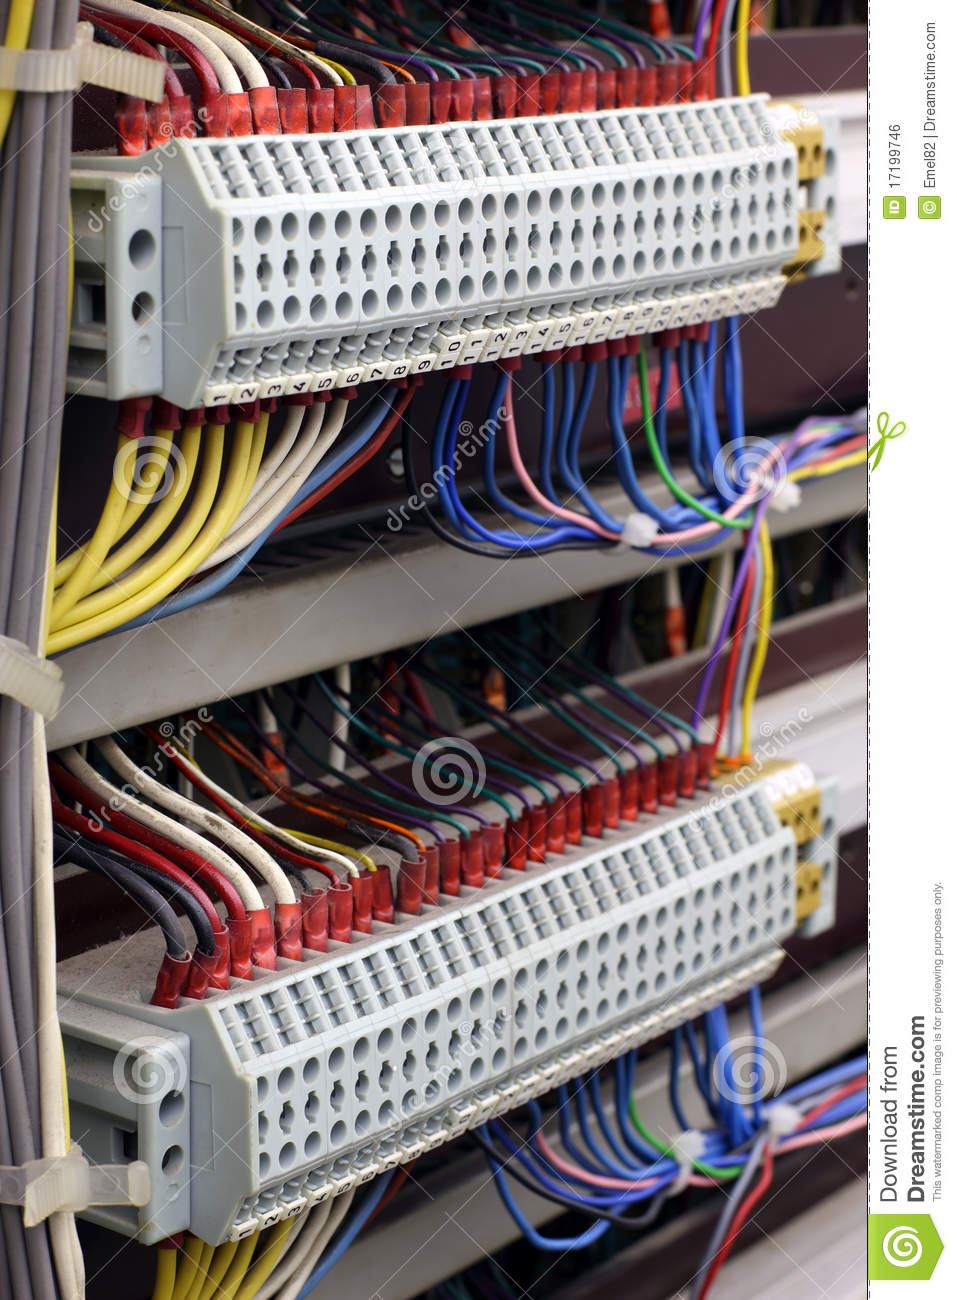 Miraculous Electric Omc Wiring Diagram 1972 Get Free Image About Wiring Diagram Wiring Cloud Mousmenurrecoveryedborg